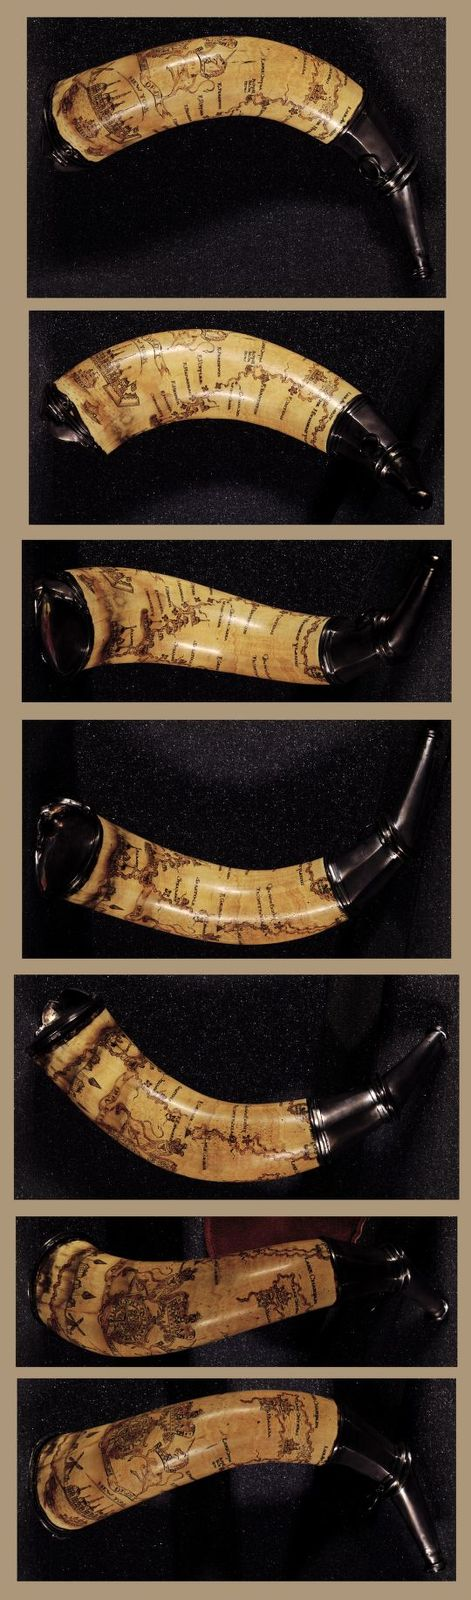 [Powder horn with hand-drawn map of the Hudson River (above Albany), Mohawk River, Niagara region, and Lake Ontario in New York Province].